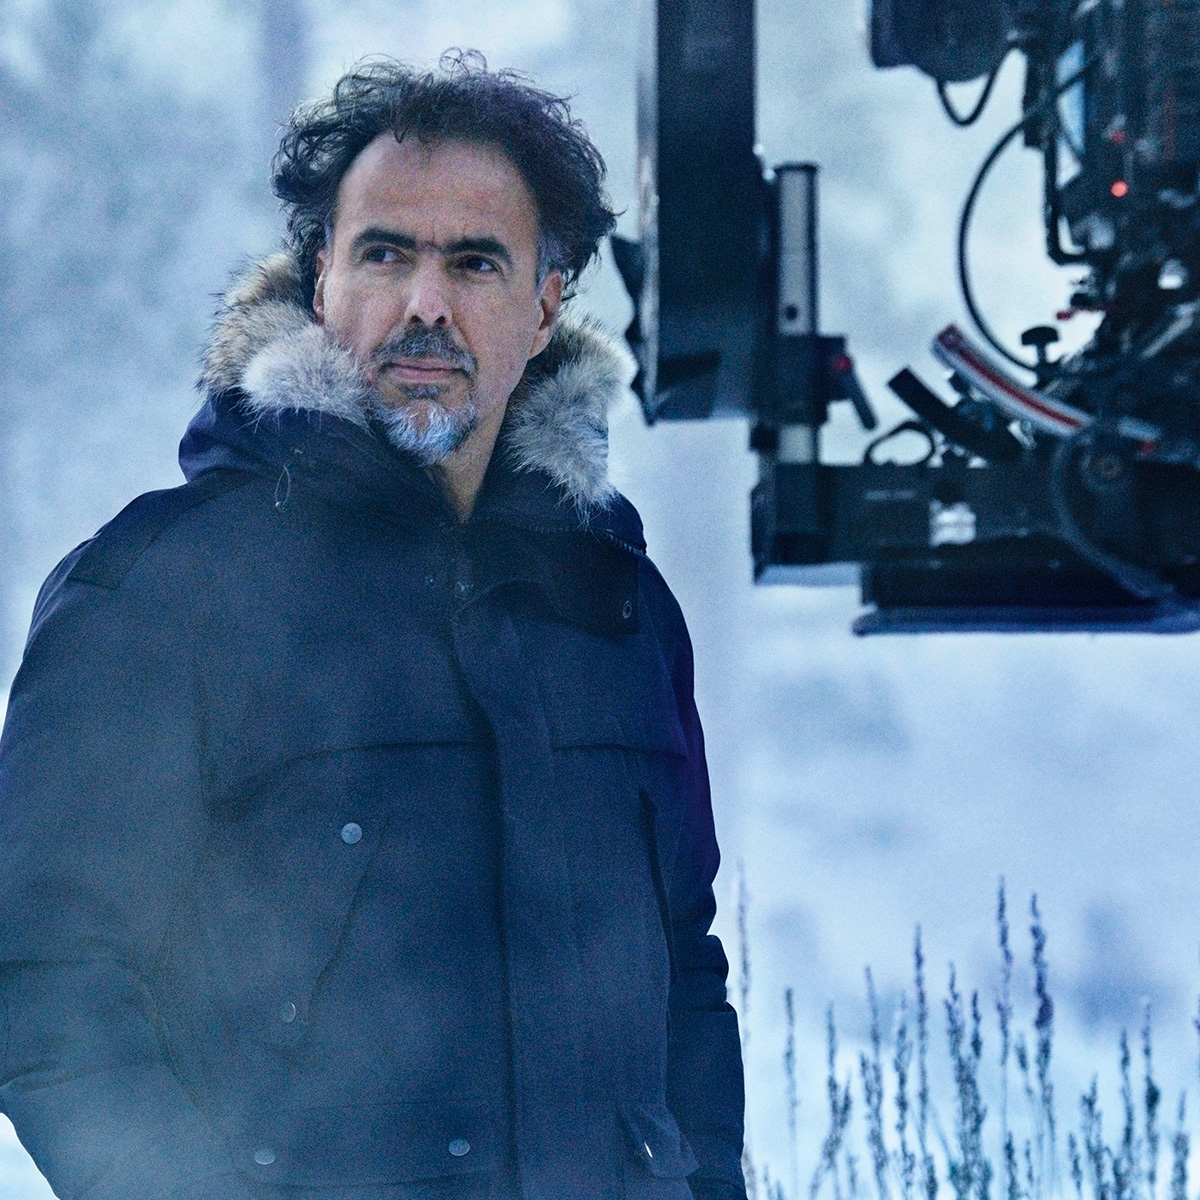 ALEJANDRO G. IÑÁRRITU  The winner of two consecutive Oscars for Best Director (Birdman in 2015, The Revenant in 2016), Alejandro G. Iñárritu is known for his exploration of the human condition, coupled with his visual style, which have established him as a force to be reckoned with.